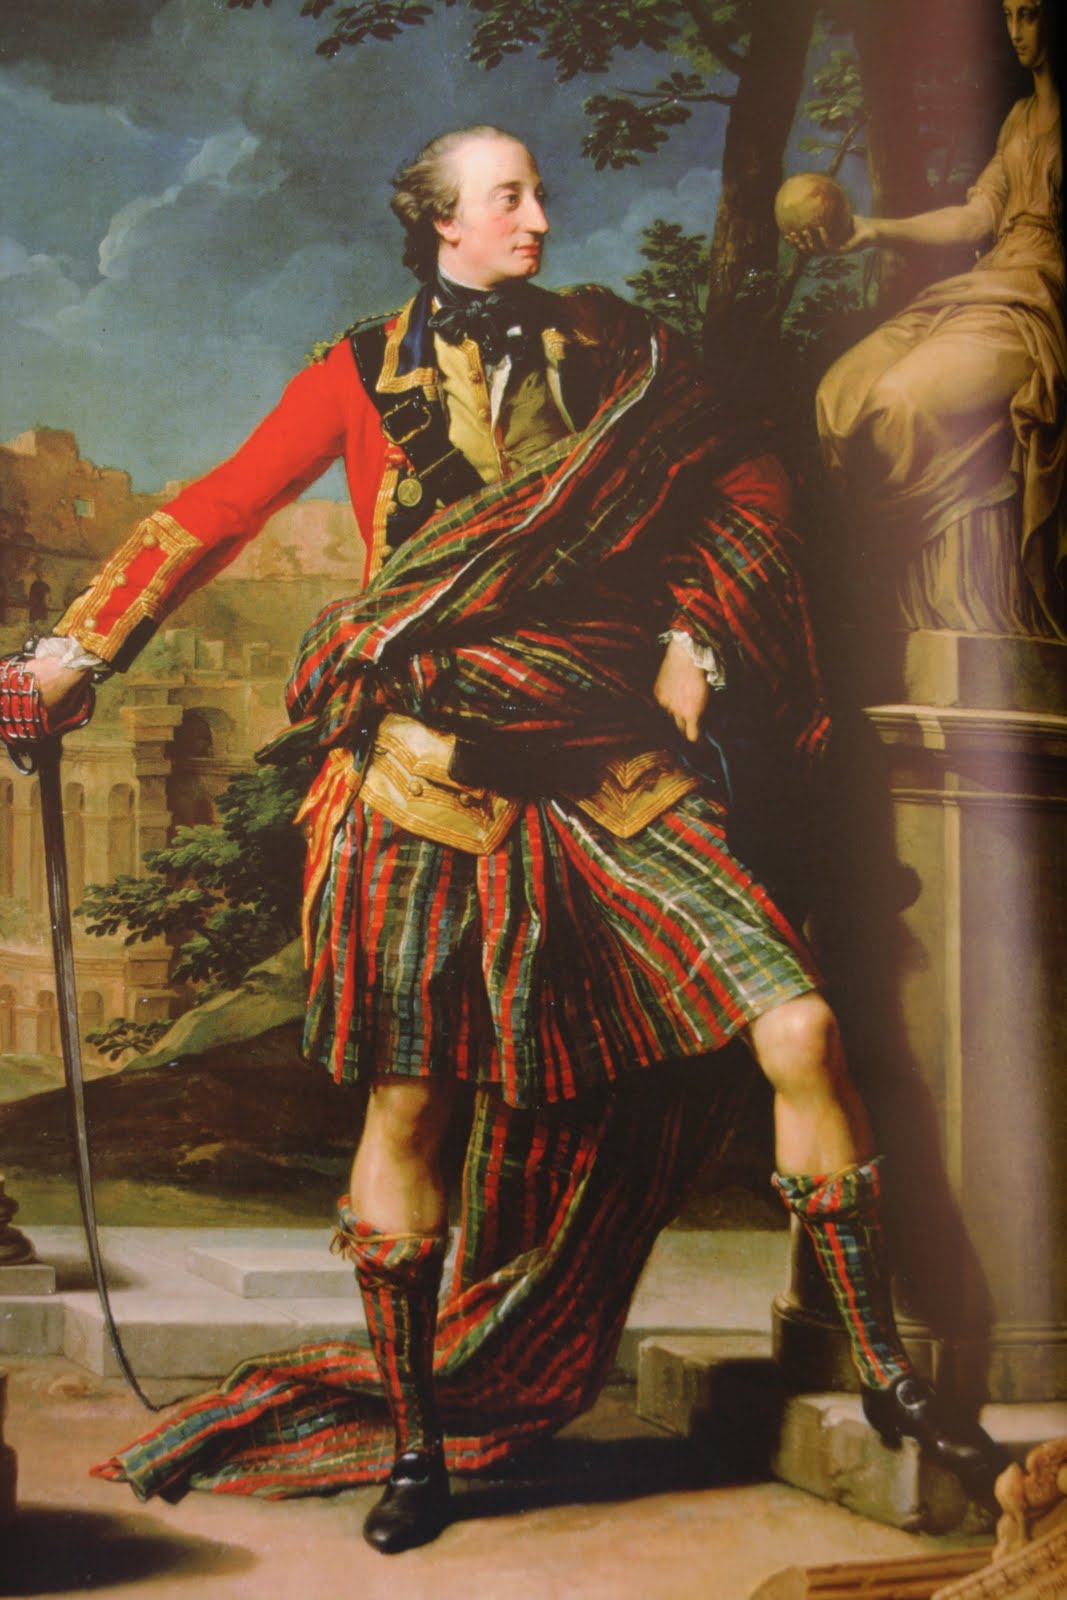 william wallace The wallace is a long narrative work composed in decasyllabic rhyming couplets it forms a biography of william wallace from his boyhood, through his career as a scots patriot in the first war of independence until his execution in london in 1305.